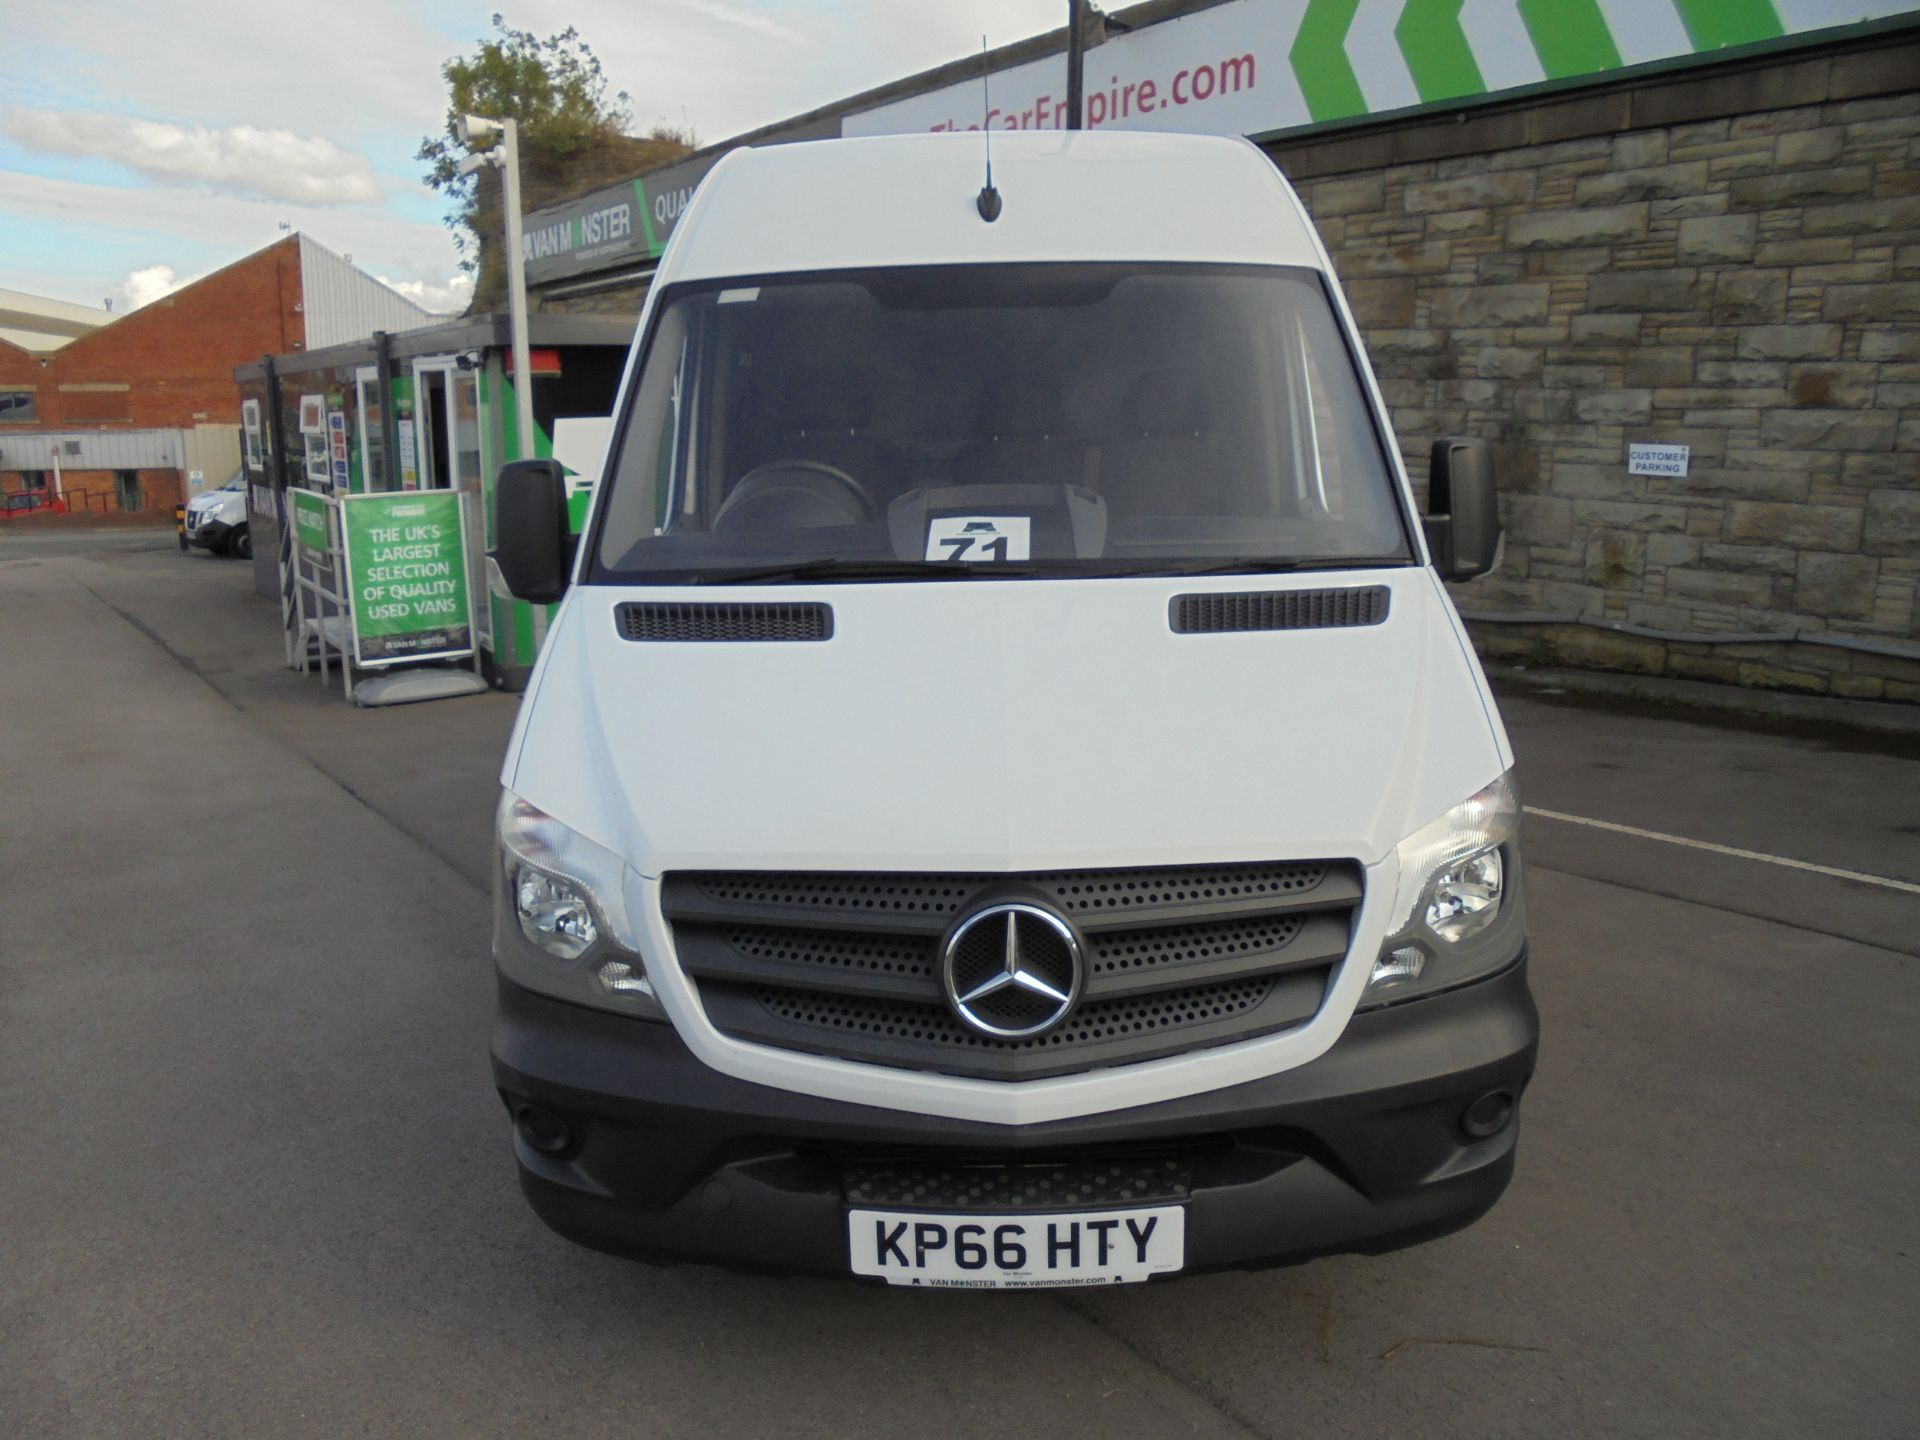 2016 Mercedes-Benz Sprinter 3.5T High Roof Van MWB (KP66HTY) Thumbnail 2